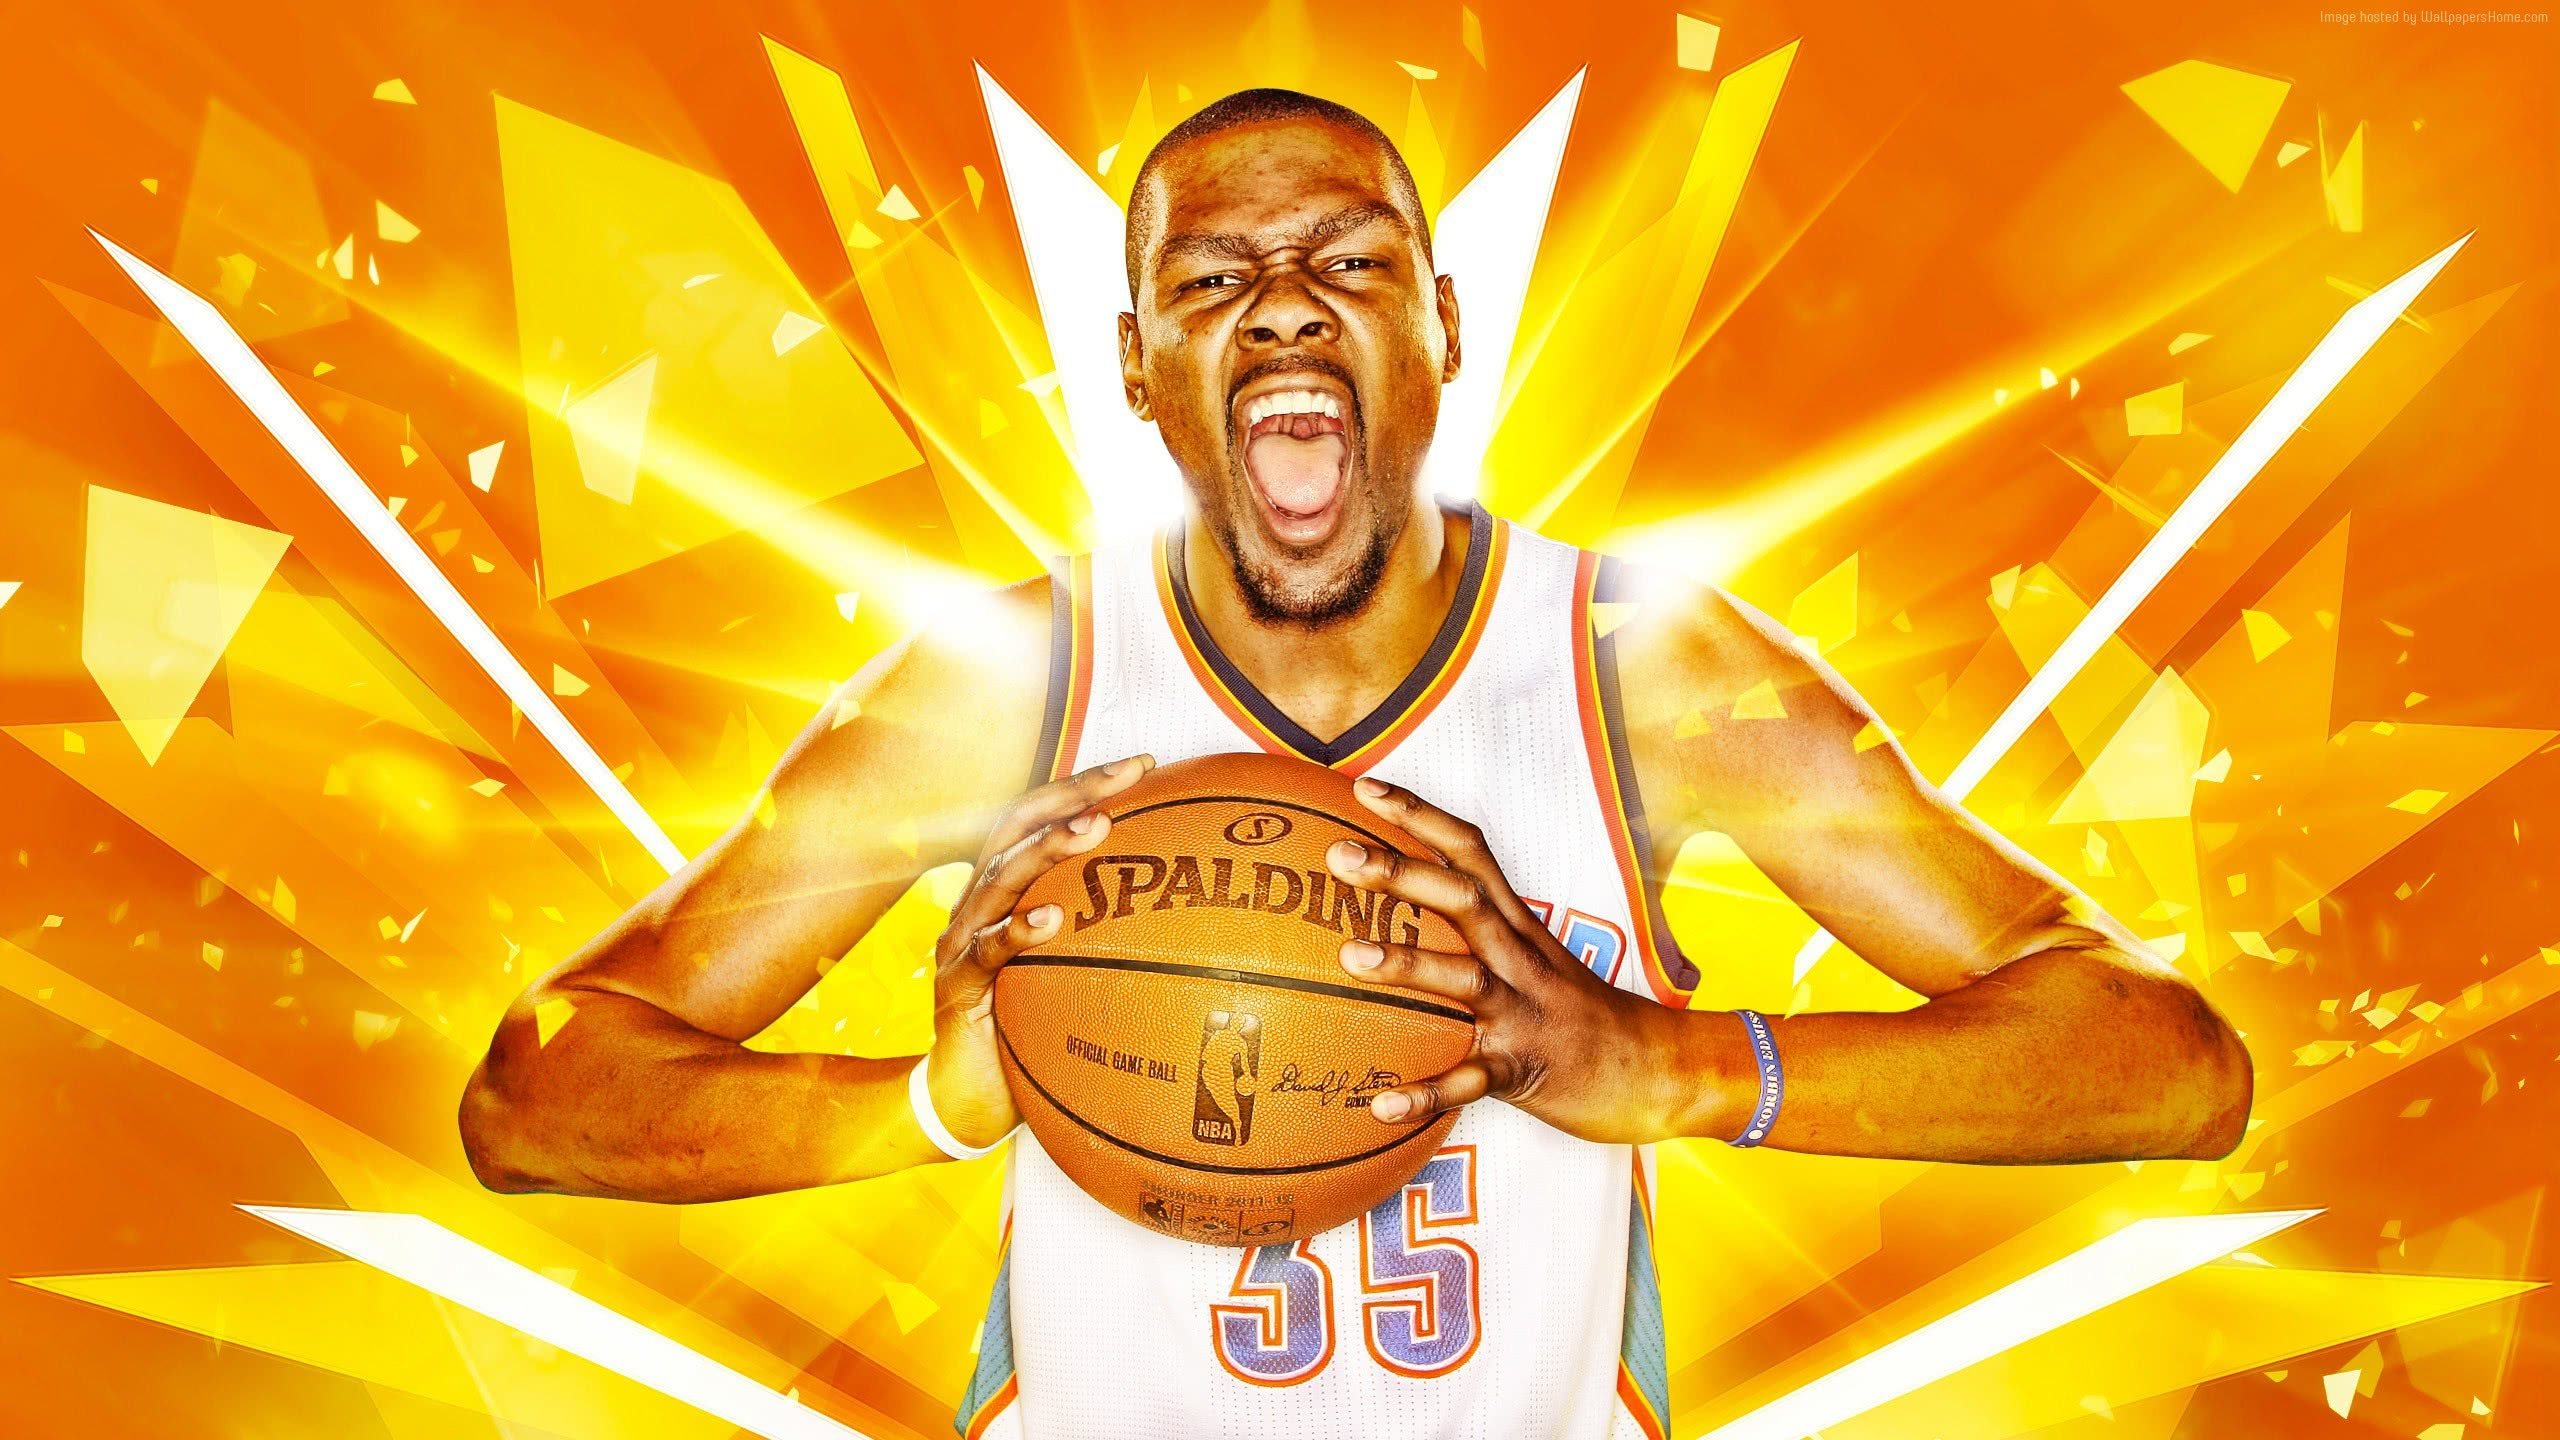 Kevin Durant Golden State Warriors Basketball Nba Wqhd 1440p